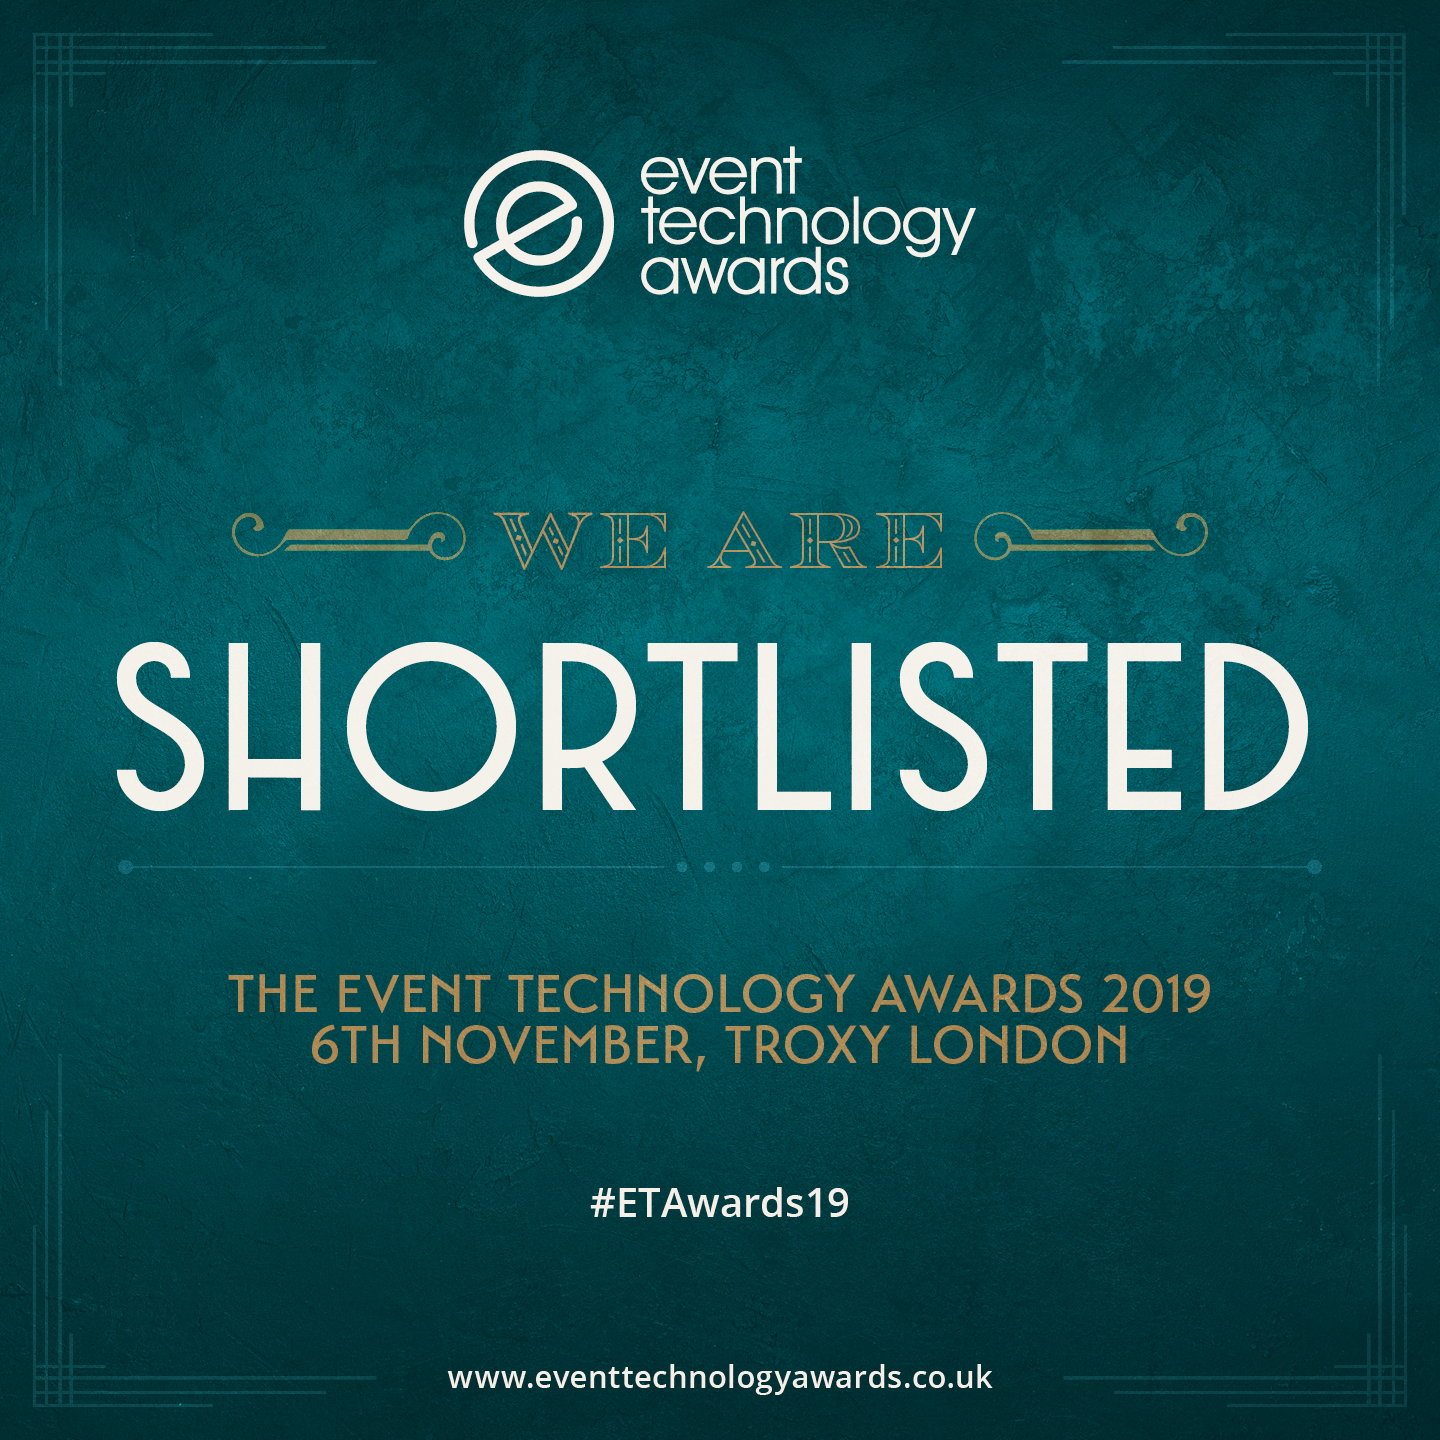 EM Shortlisted for the Event Technology Awards 2019